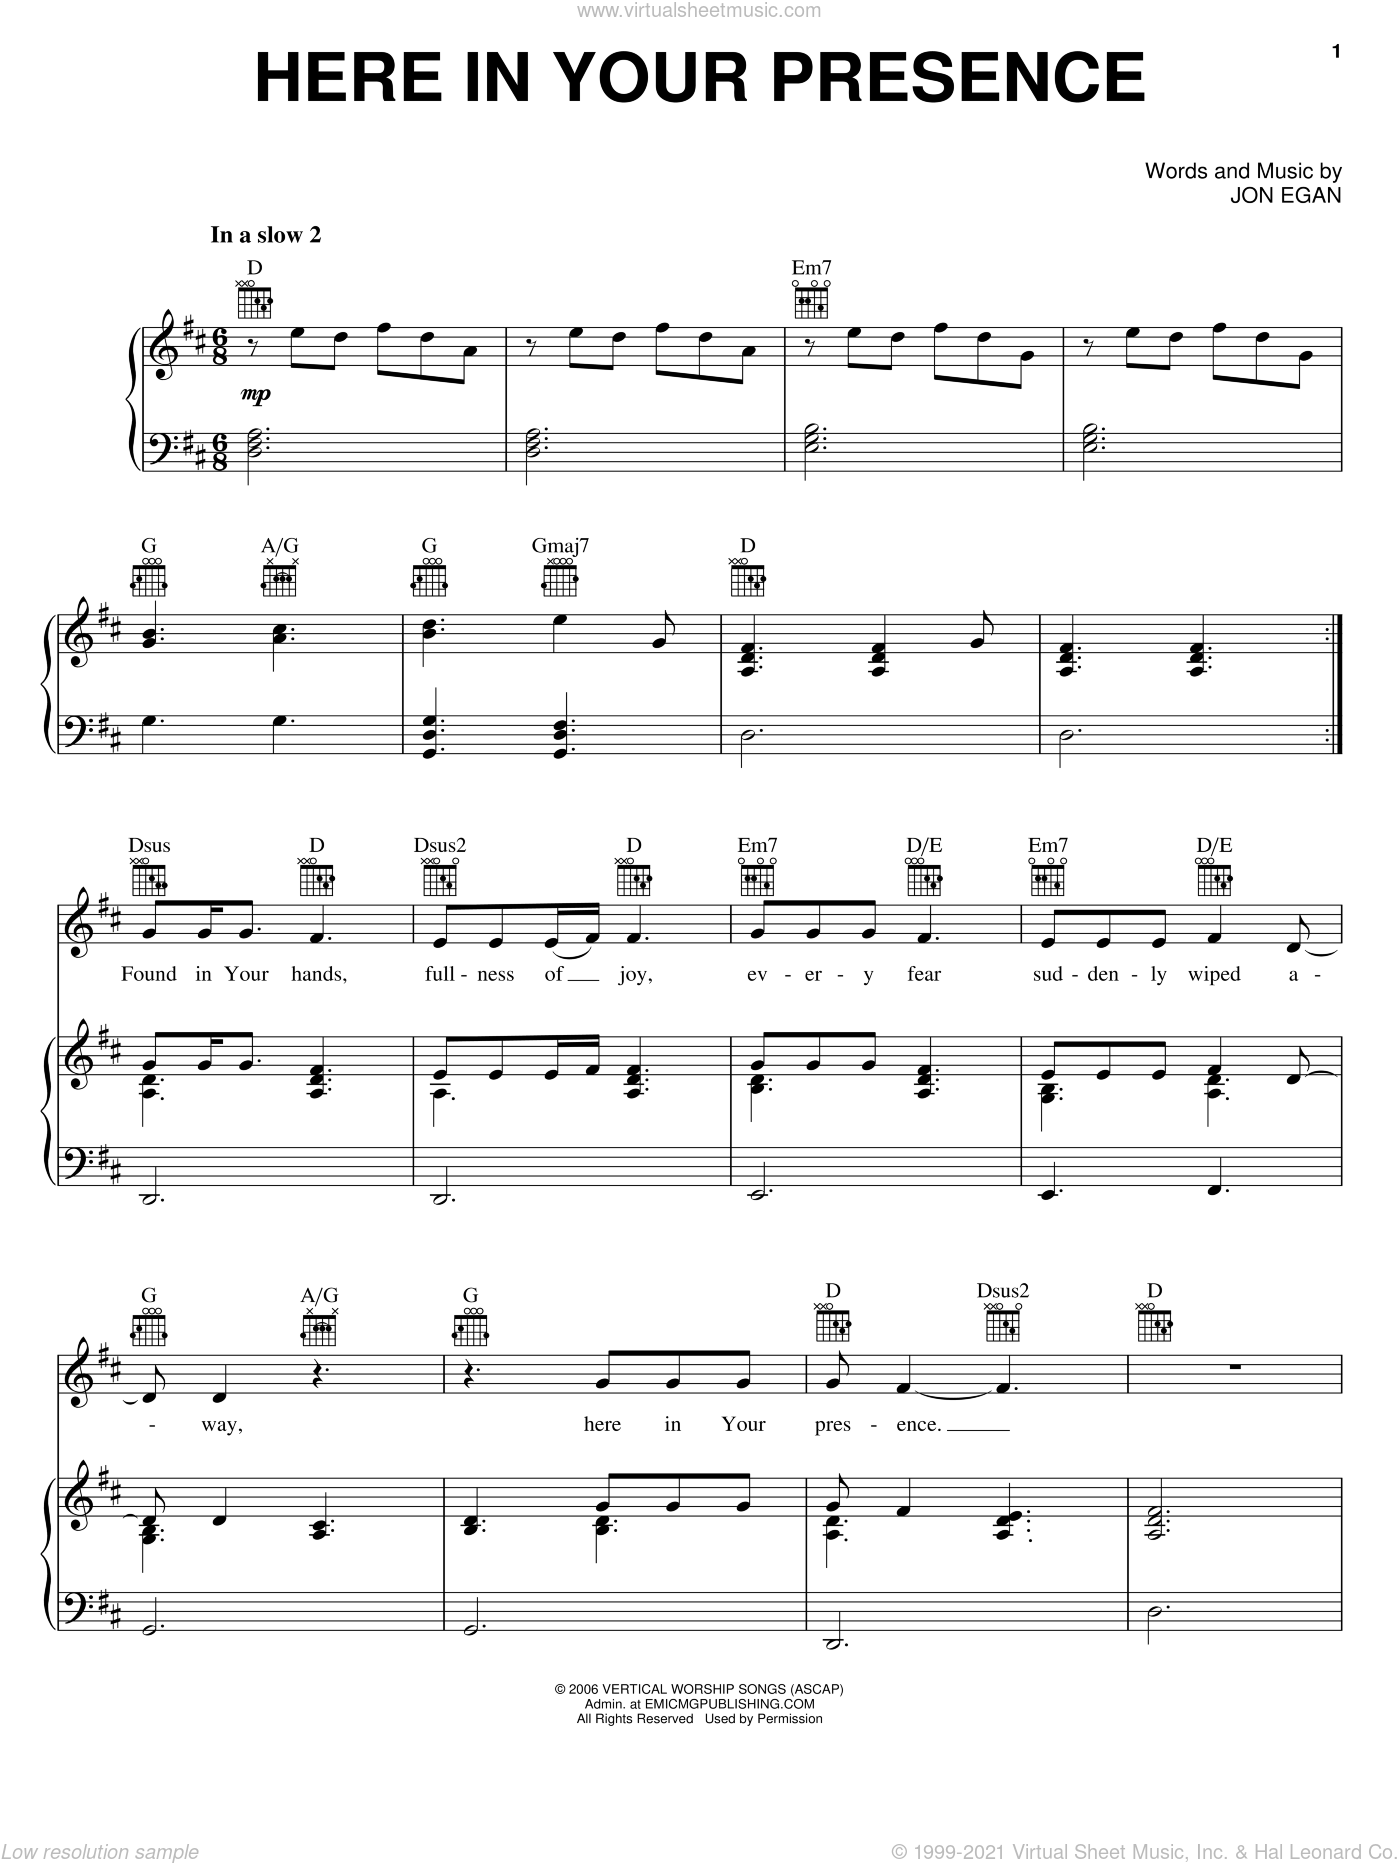 Here In Your Presence sheet music for voice, piano or guitar by New Life Worship and Jon Egan, intermediate skill level